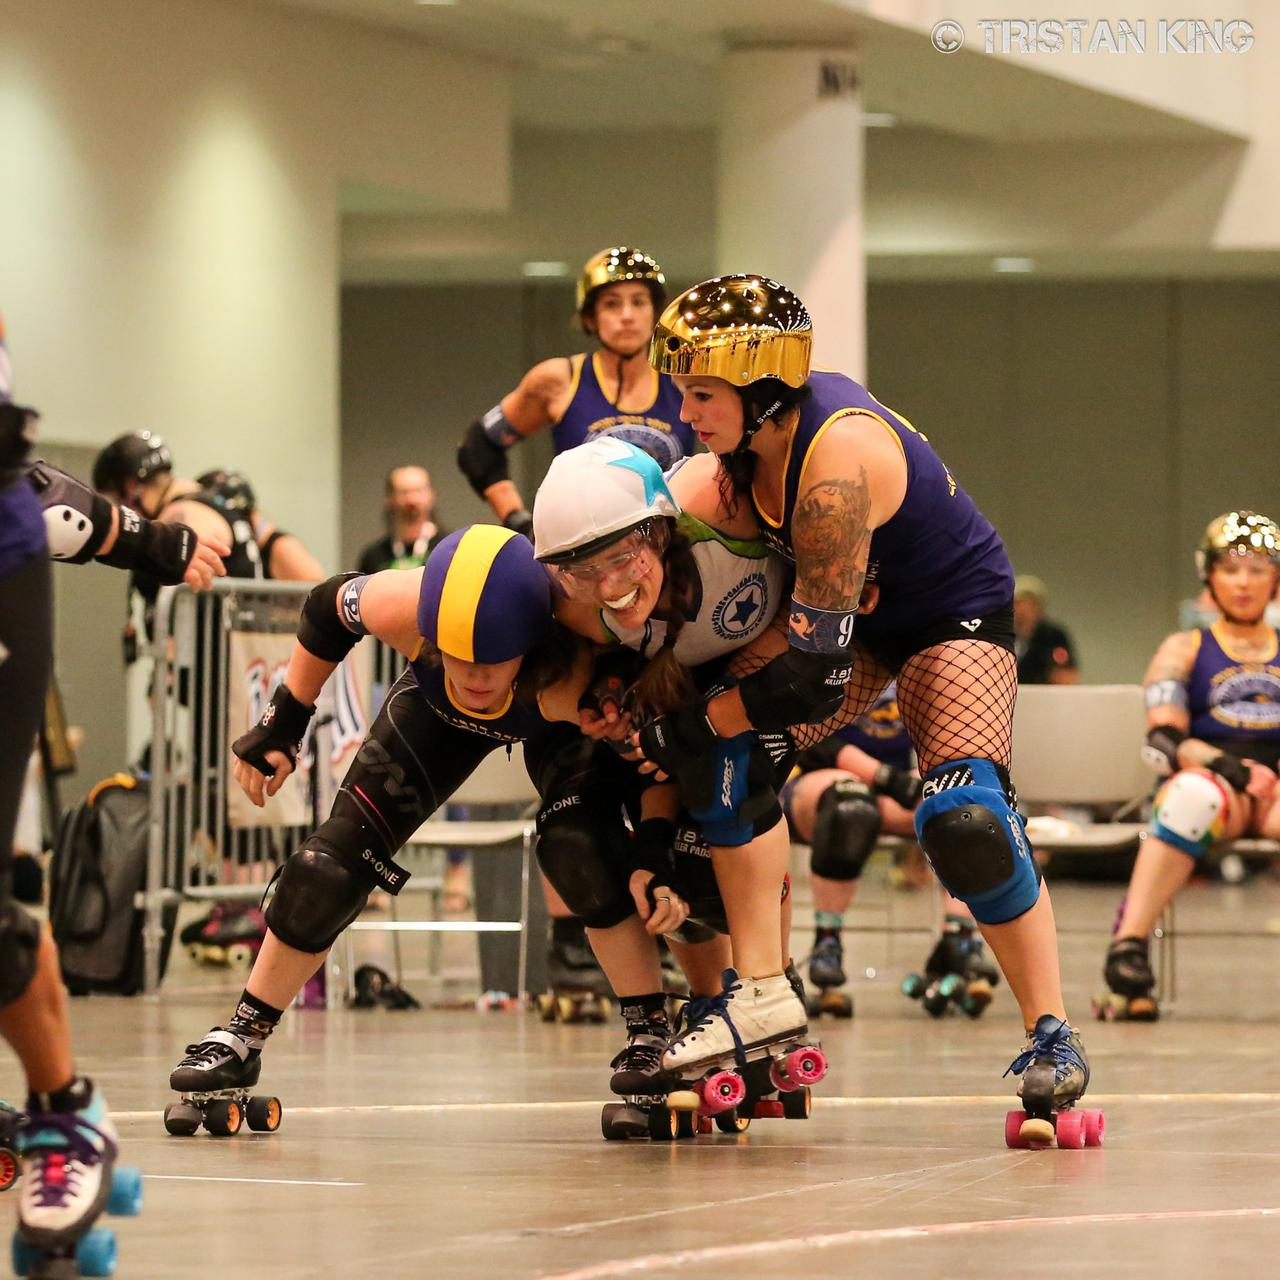 Team Indigenous and Jewish Roller Derby skaters in a complex blocking situation